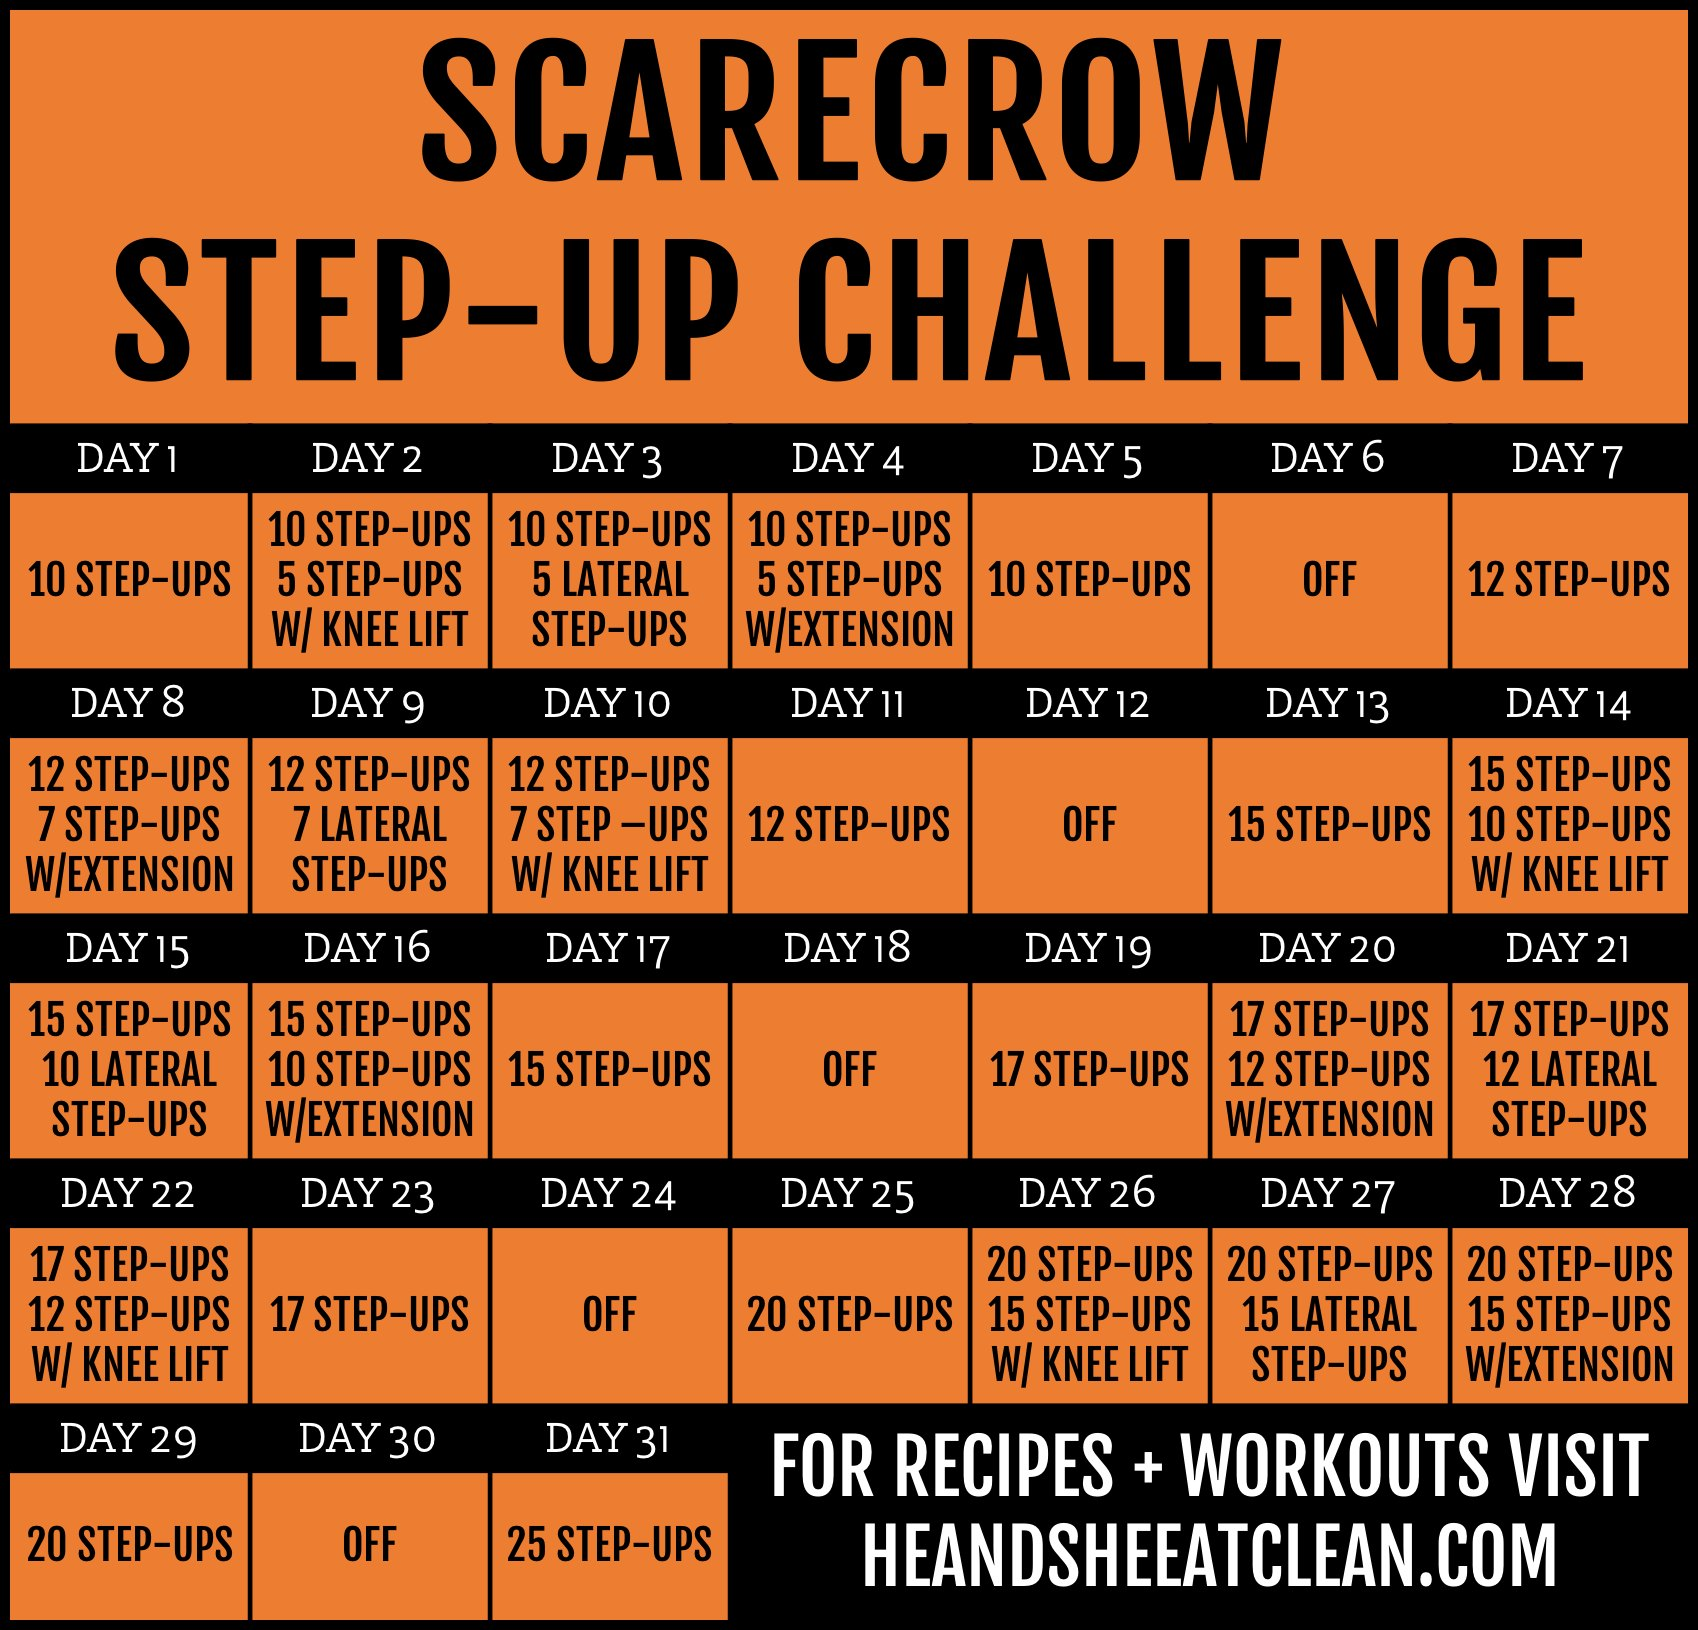 31-Day Scarecrow Step-Up Challenge